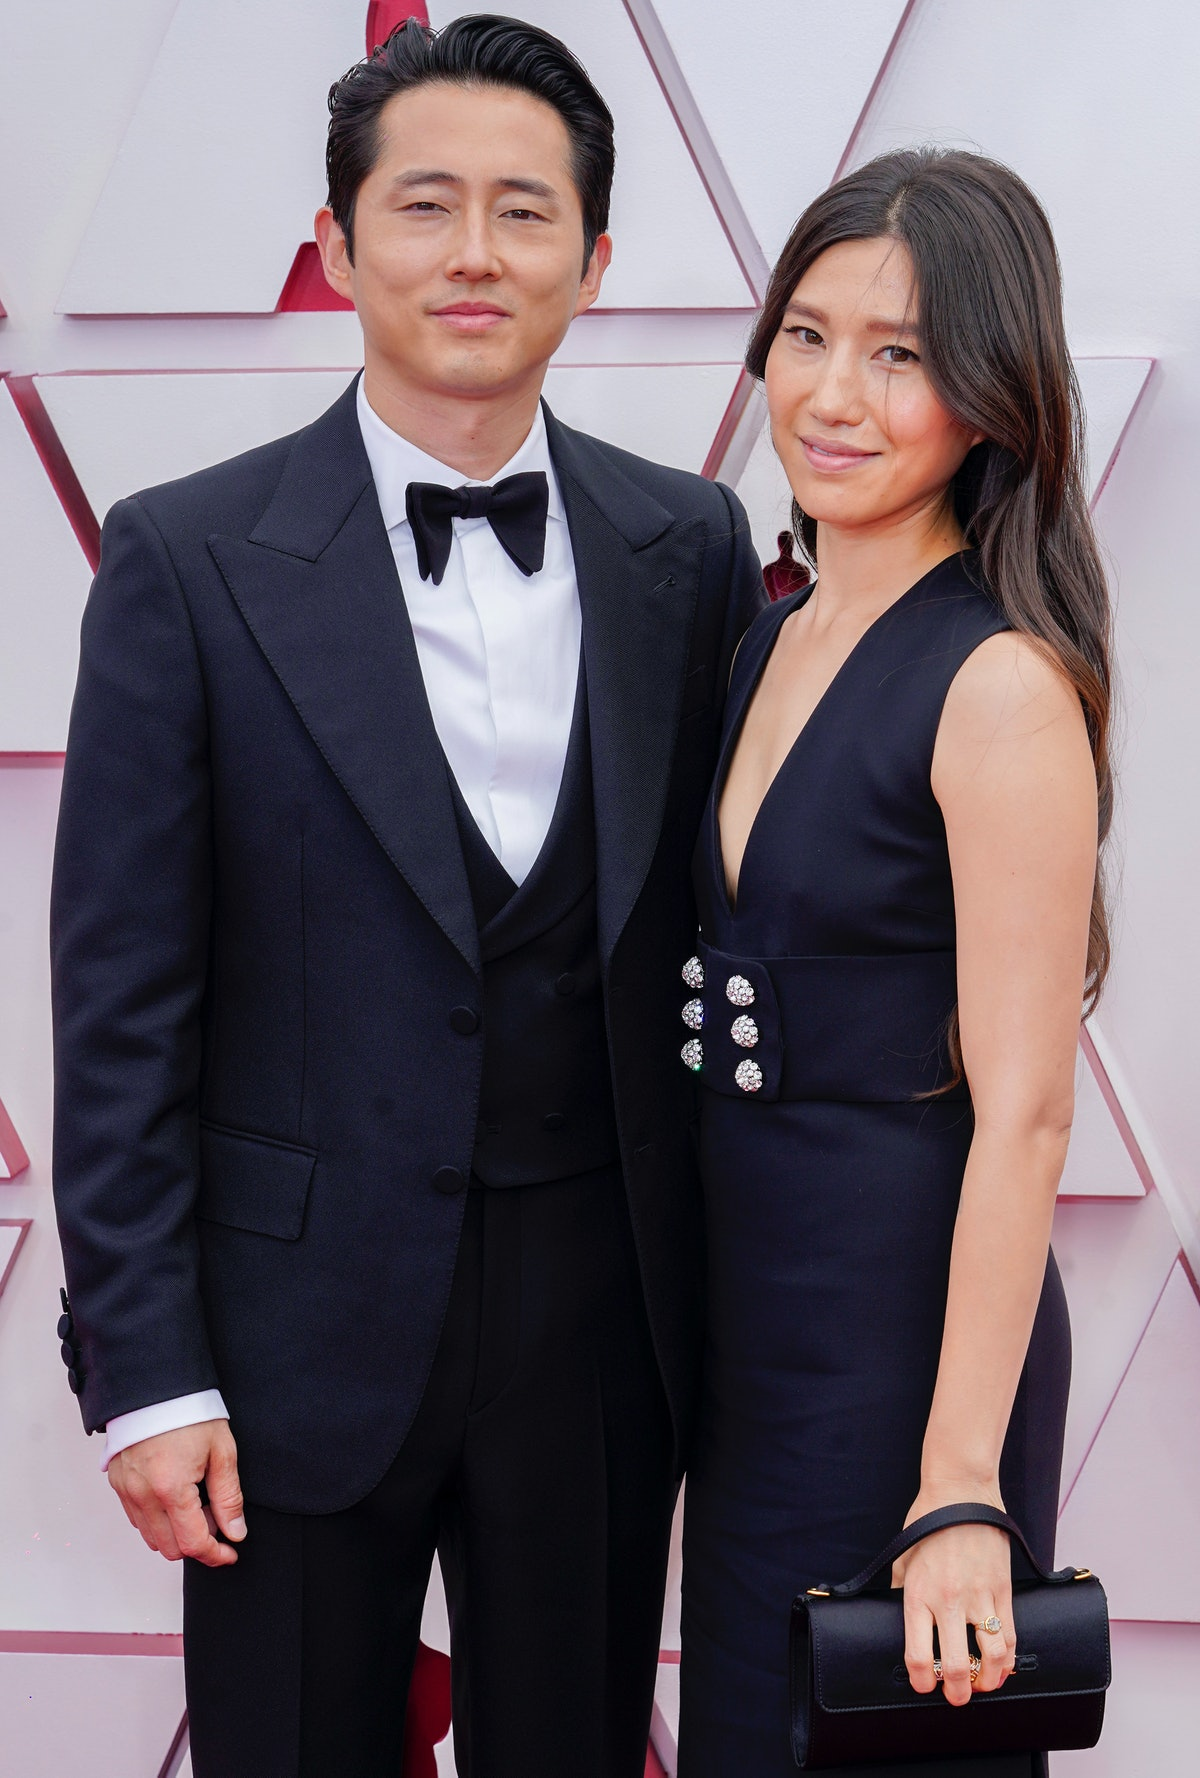 Steven Yeun and Joana Pak attend the 93rd Annual Academy Awards at Union Station on April 25, 2021 in Los Angeles, California. ()